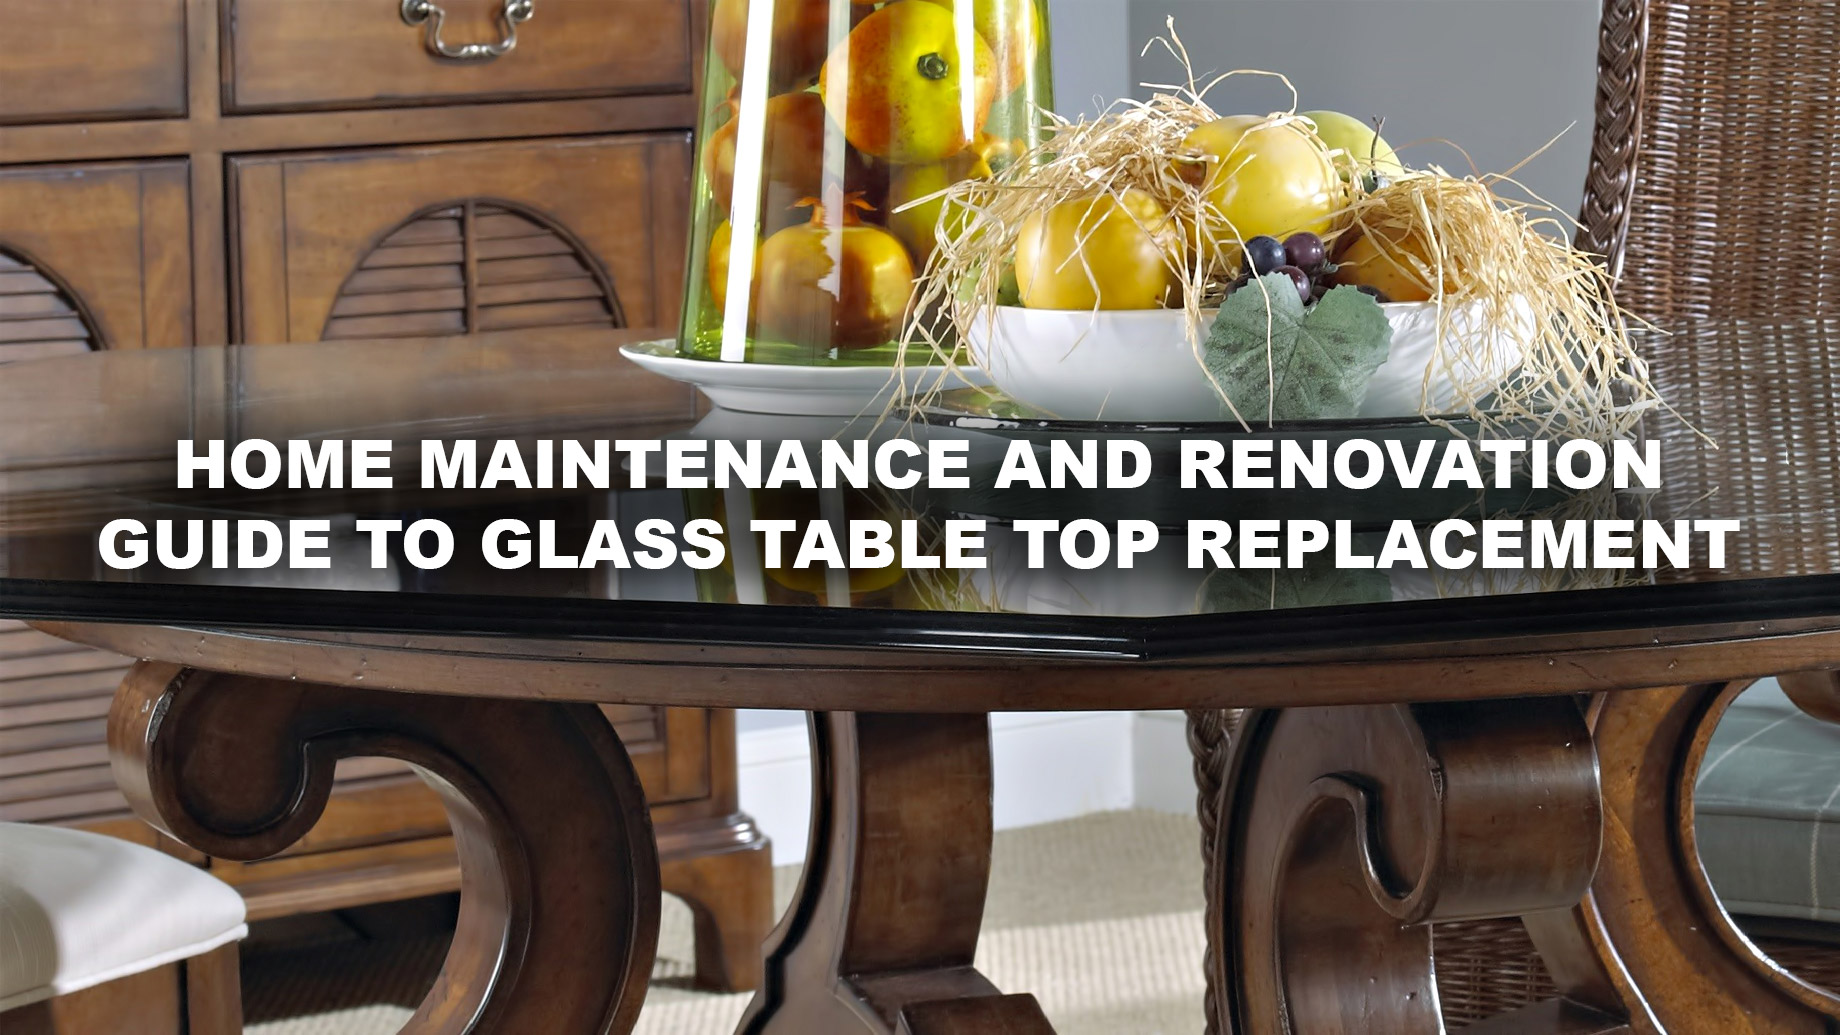 Home Maintenance and Renovation Guide to Glass Table Top Replacement